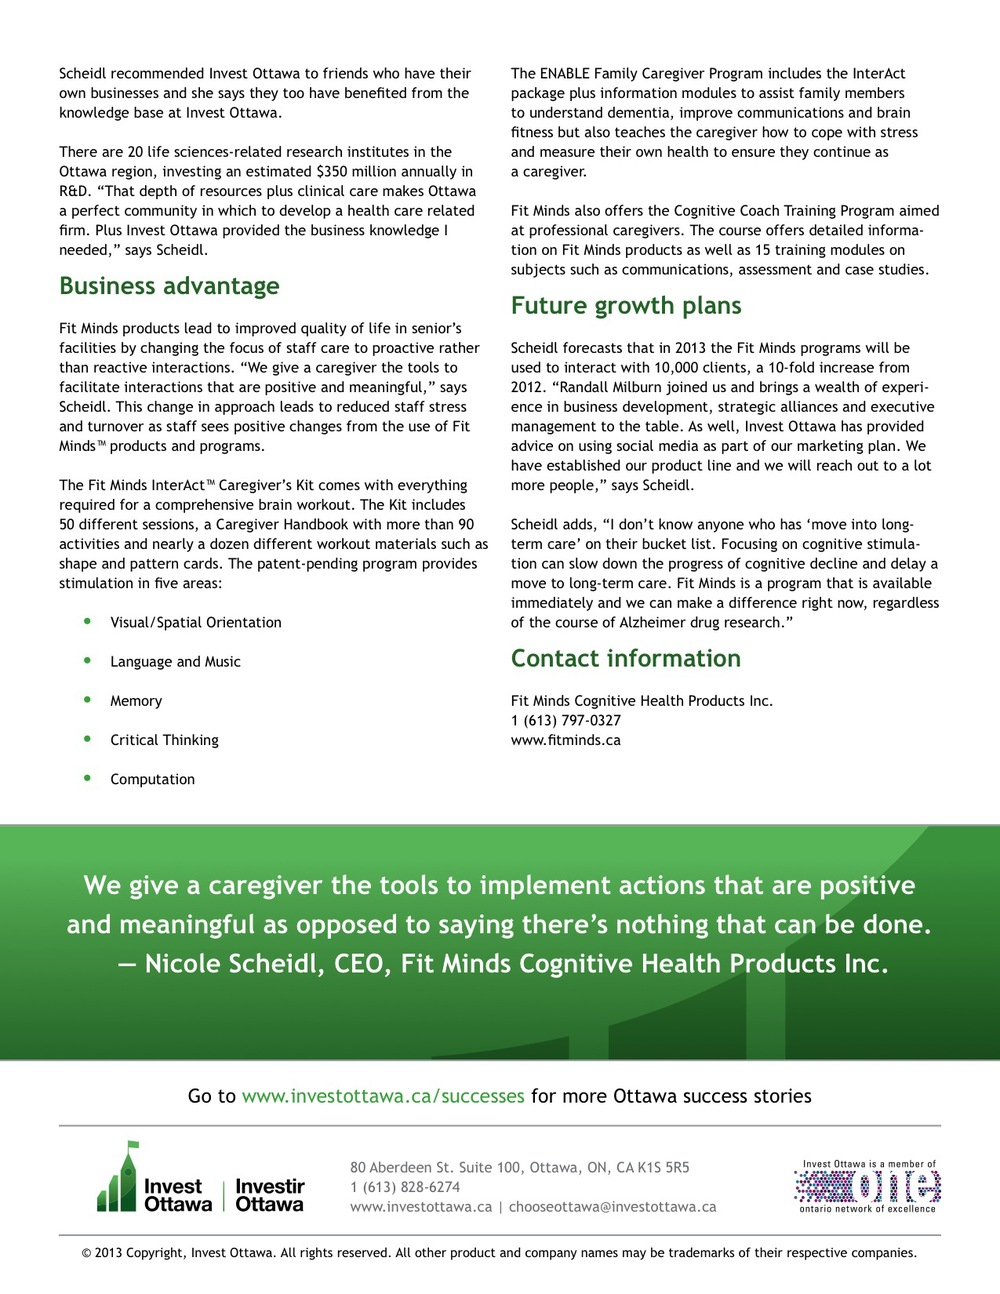 2013-05-24-InvestOttawa-FitMinds-VIEW-page2.jpg